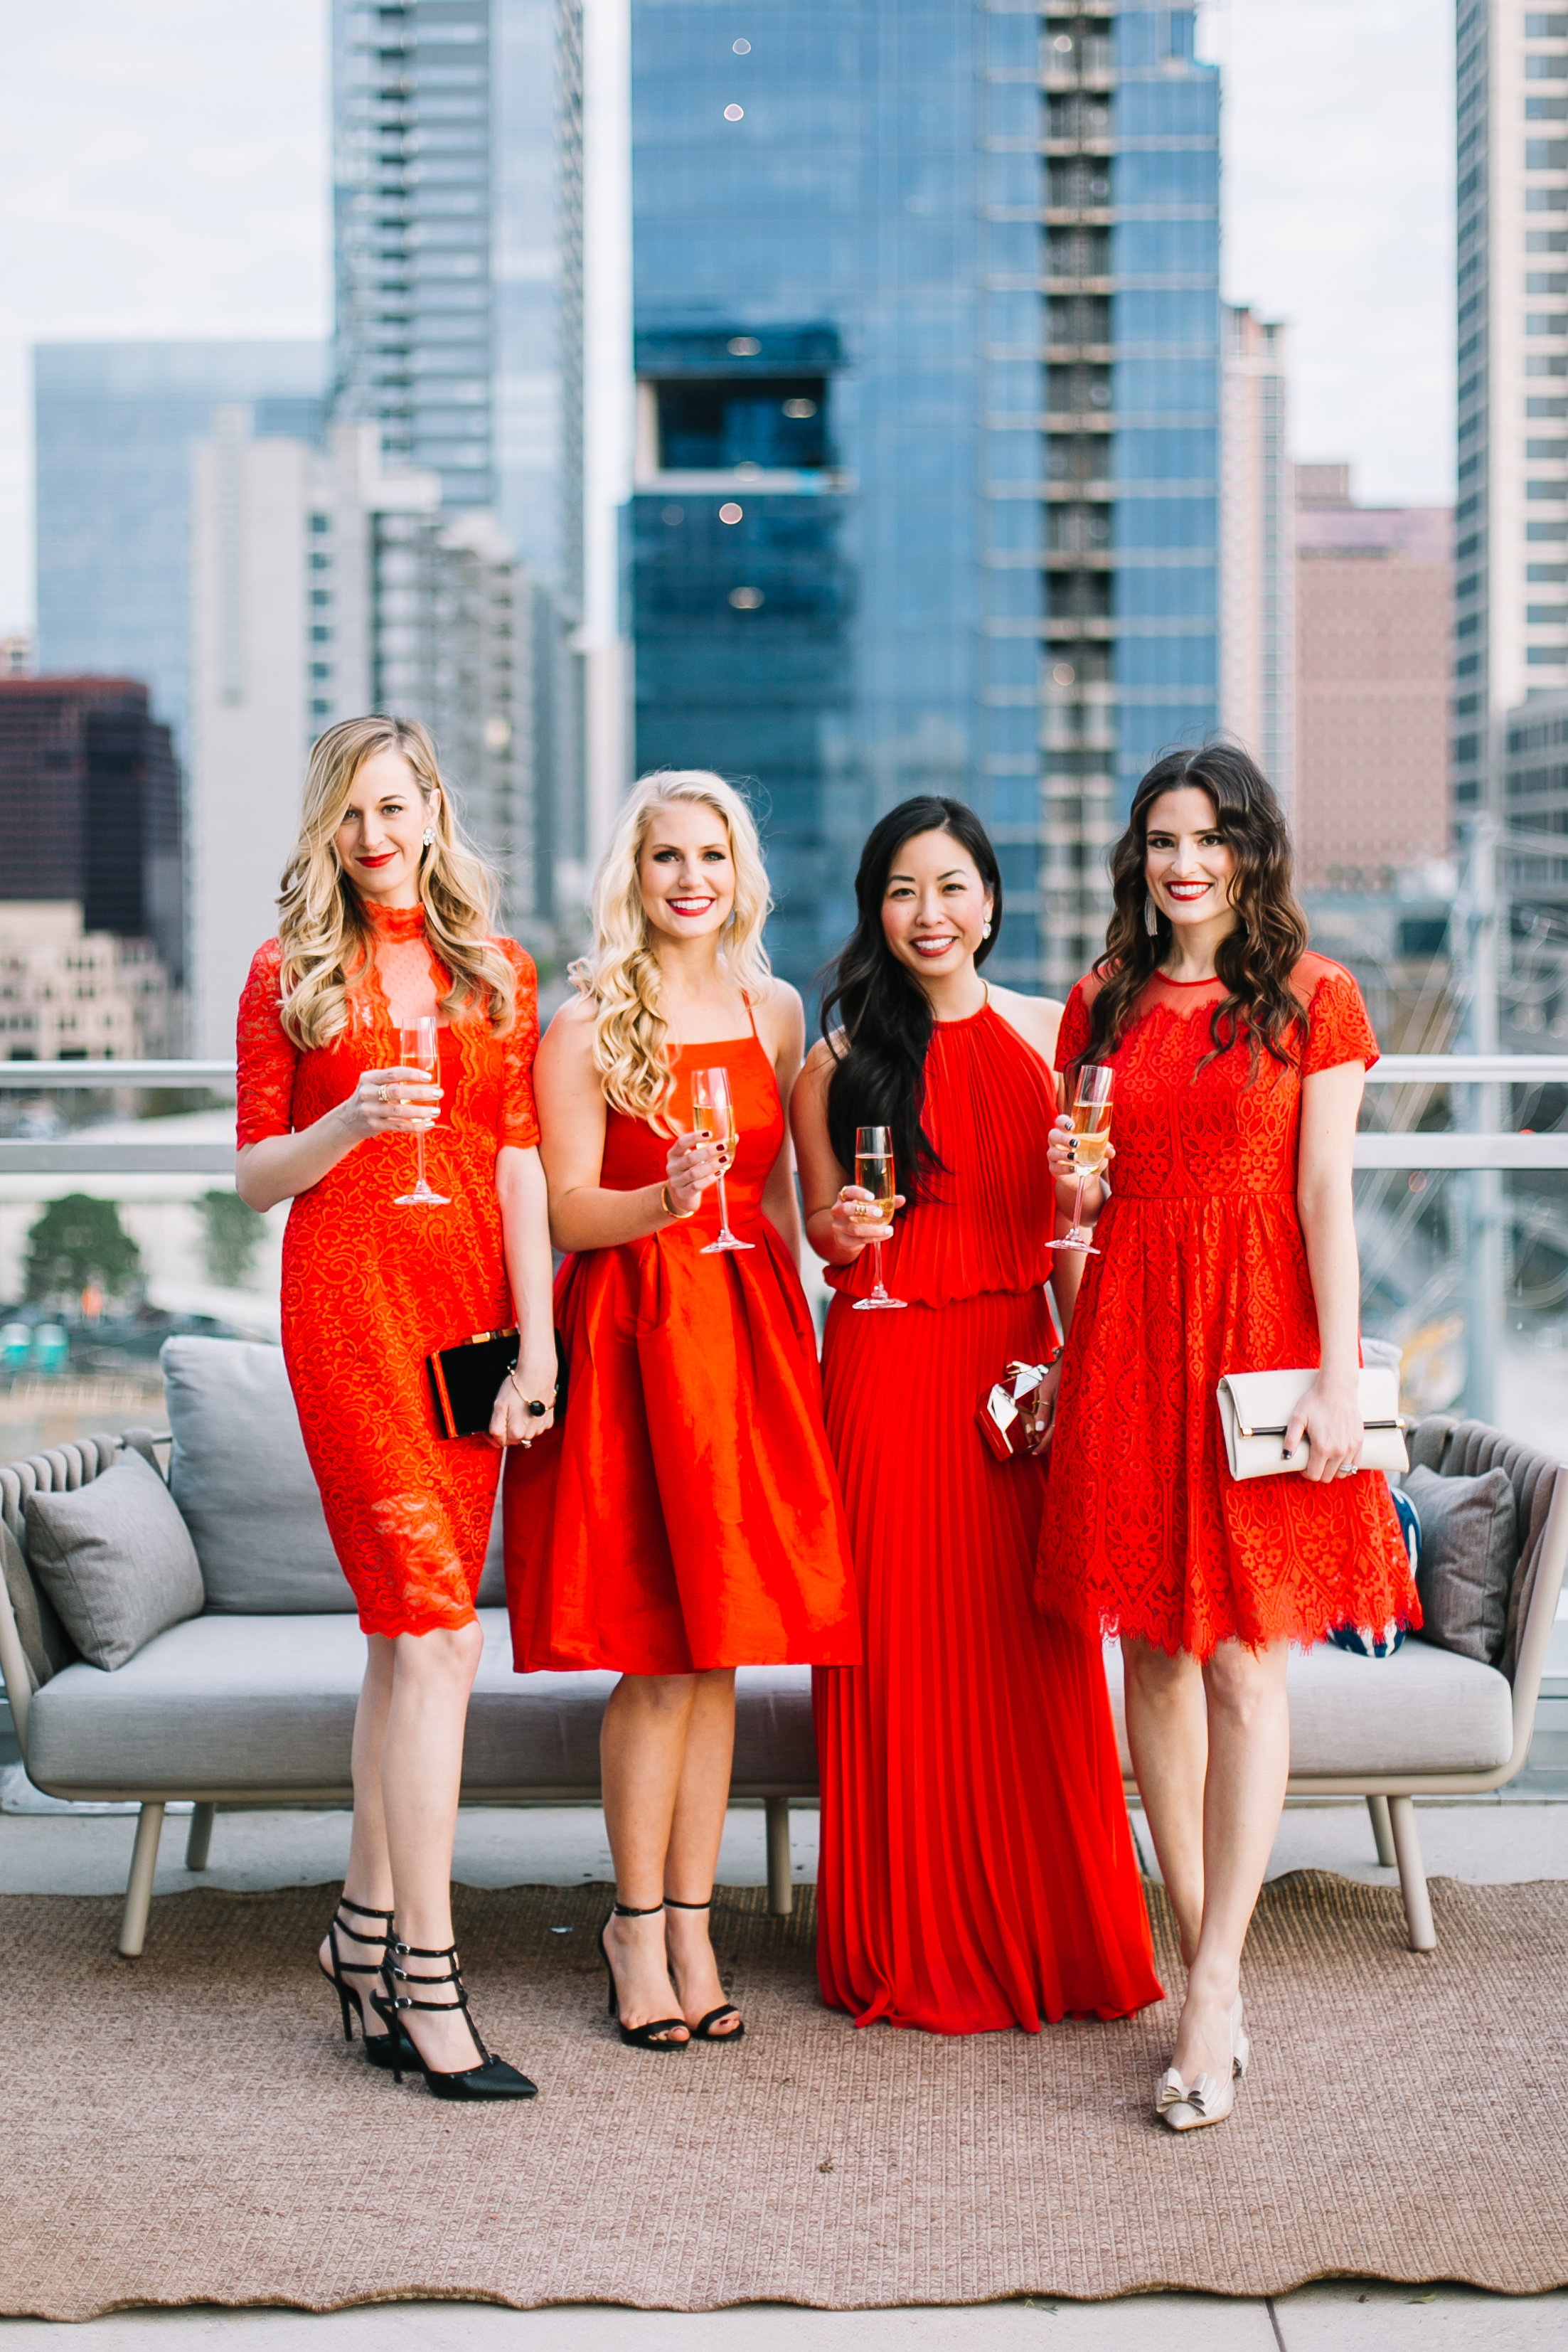 ladies in red.  @heykailymae  //  @thetrendytomboy  // JD //  @stylebeacon